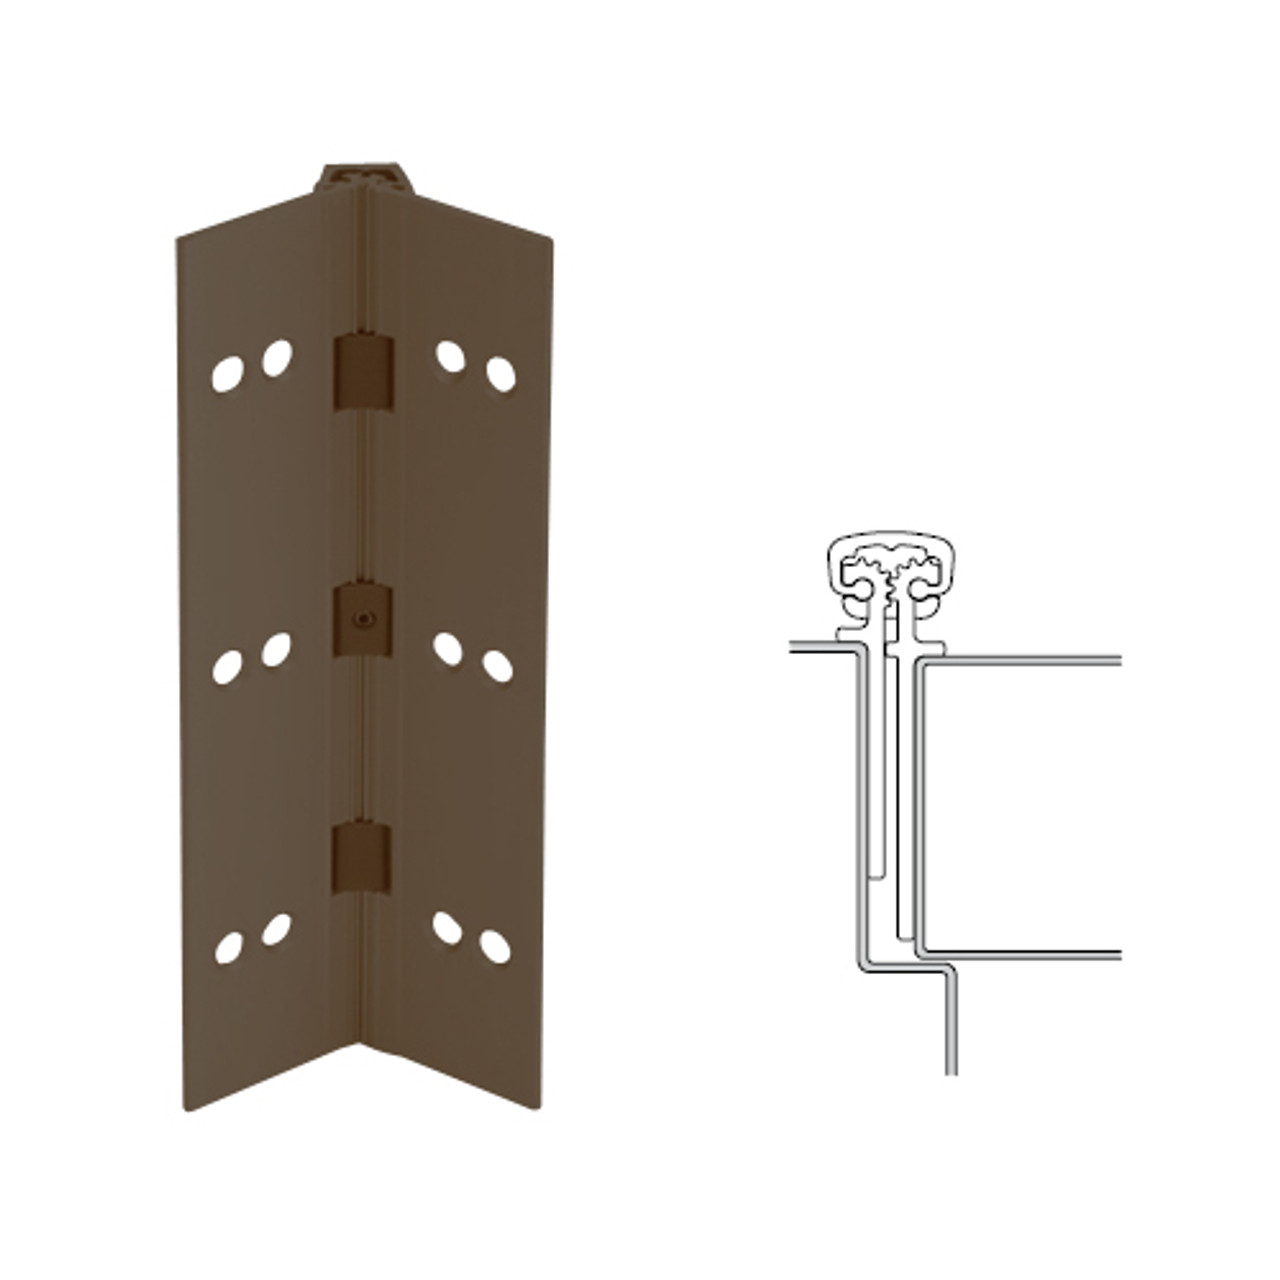 026XY-313AN-85-SECWDWD IVES Full Mortise Continuous Geared Hinges with Security Screws - Hex Pin Drive in Dark Bronze Anodized